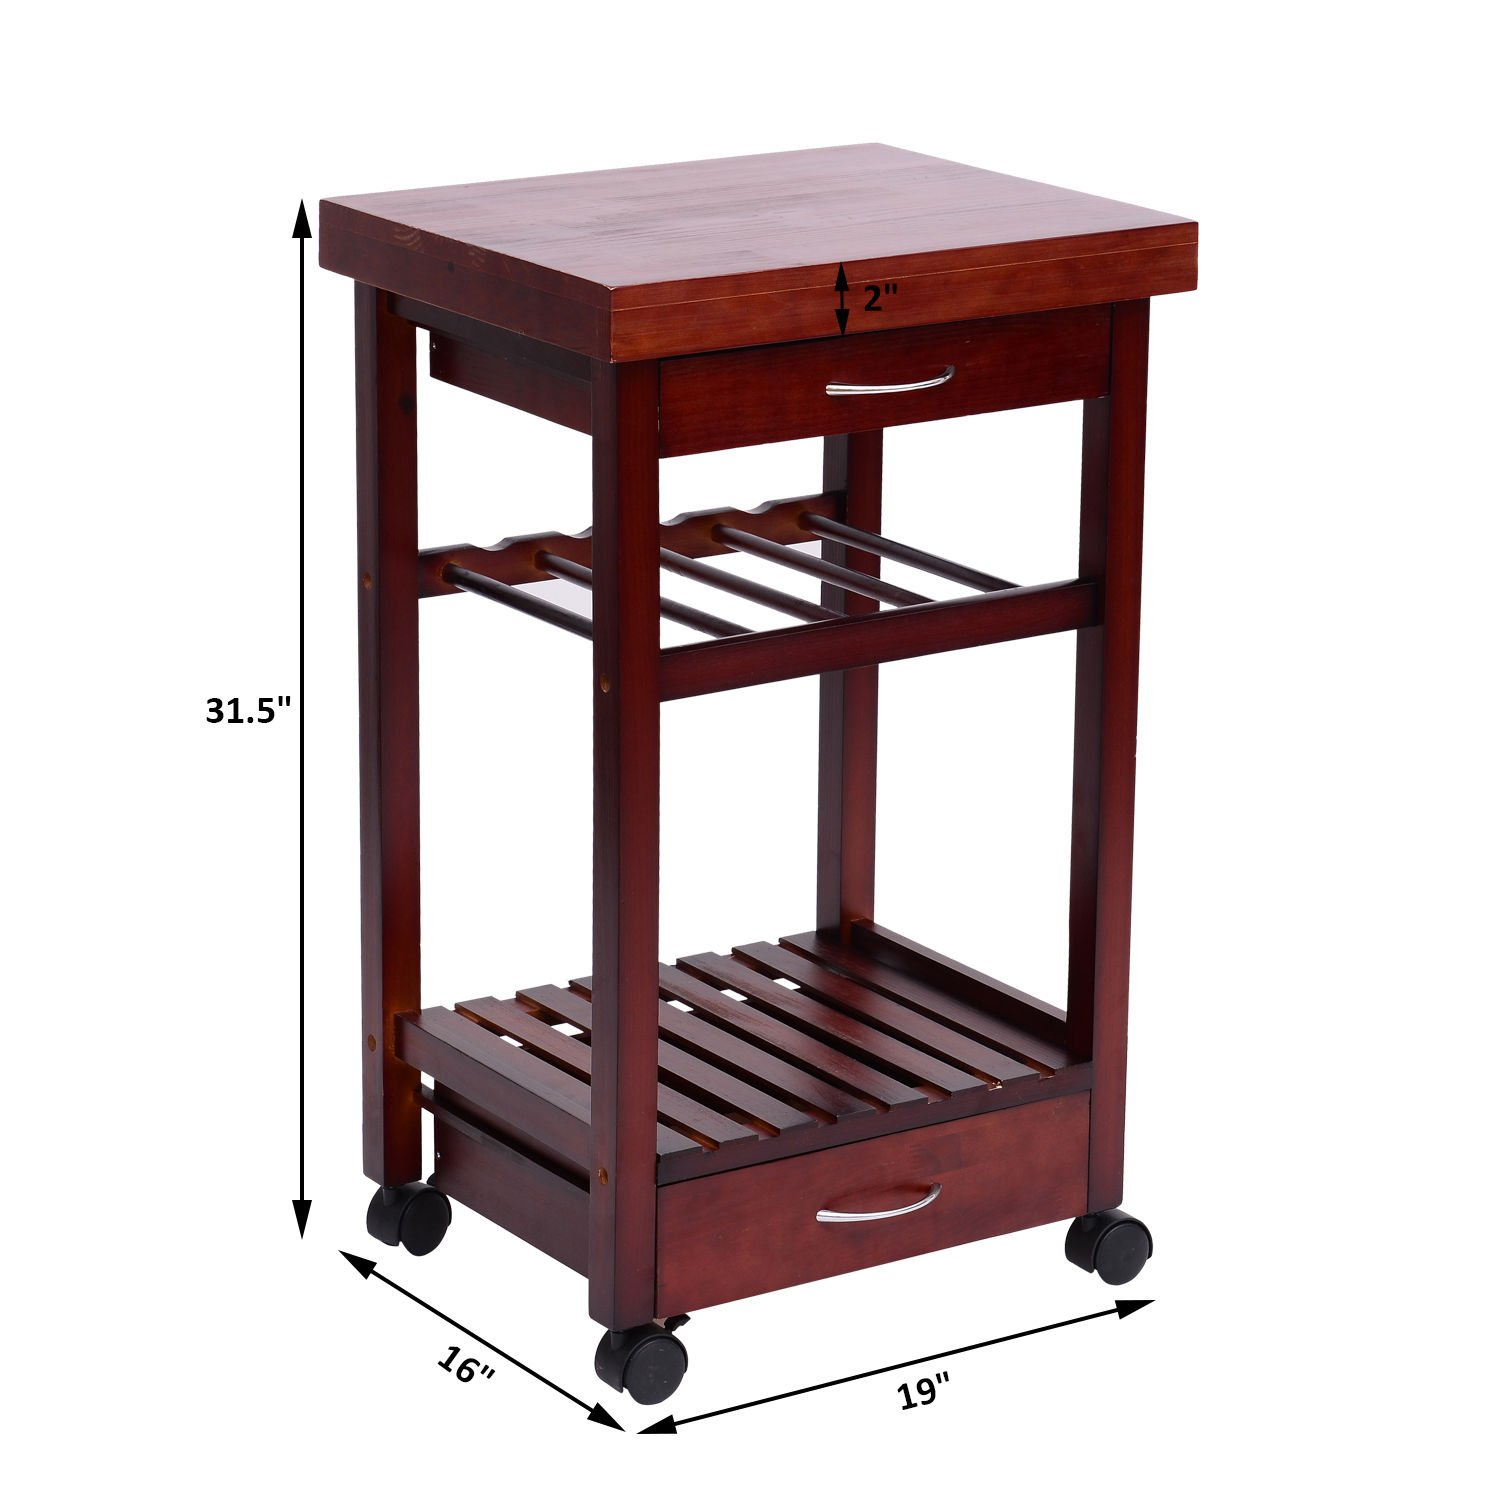 Festnight Kitchen Trolley Dining Storage Cart with Drawers and Wine Rack,Vintage Style by Festnight (Image #6)